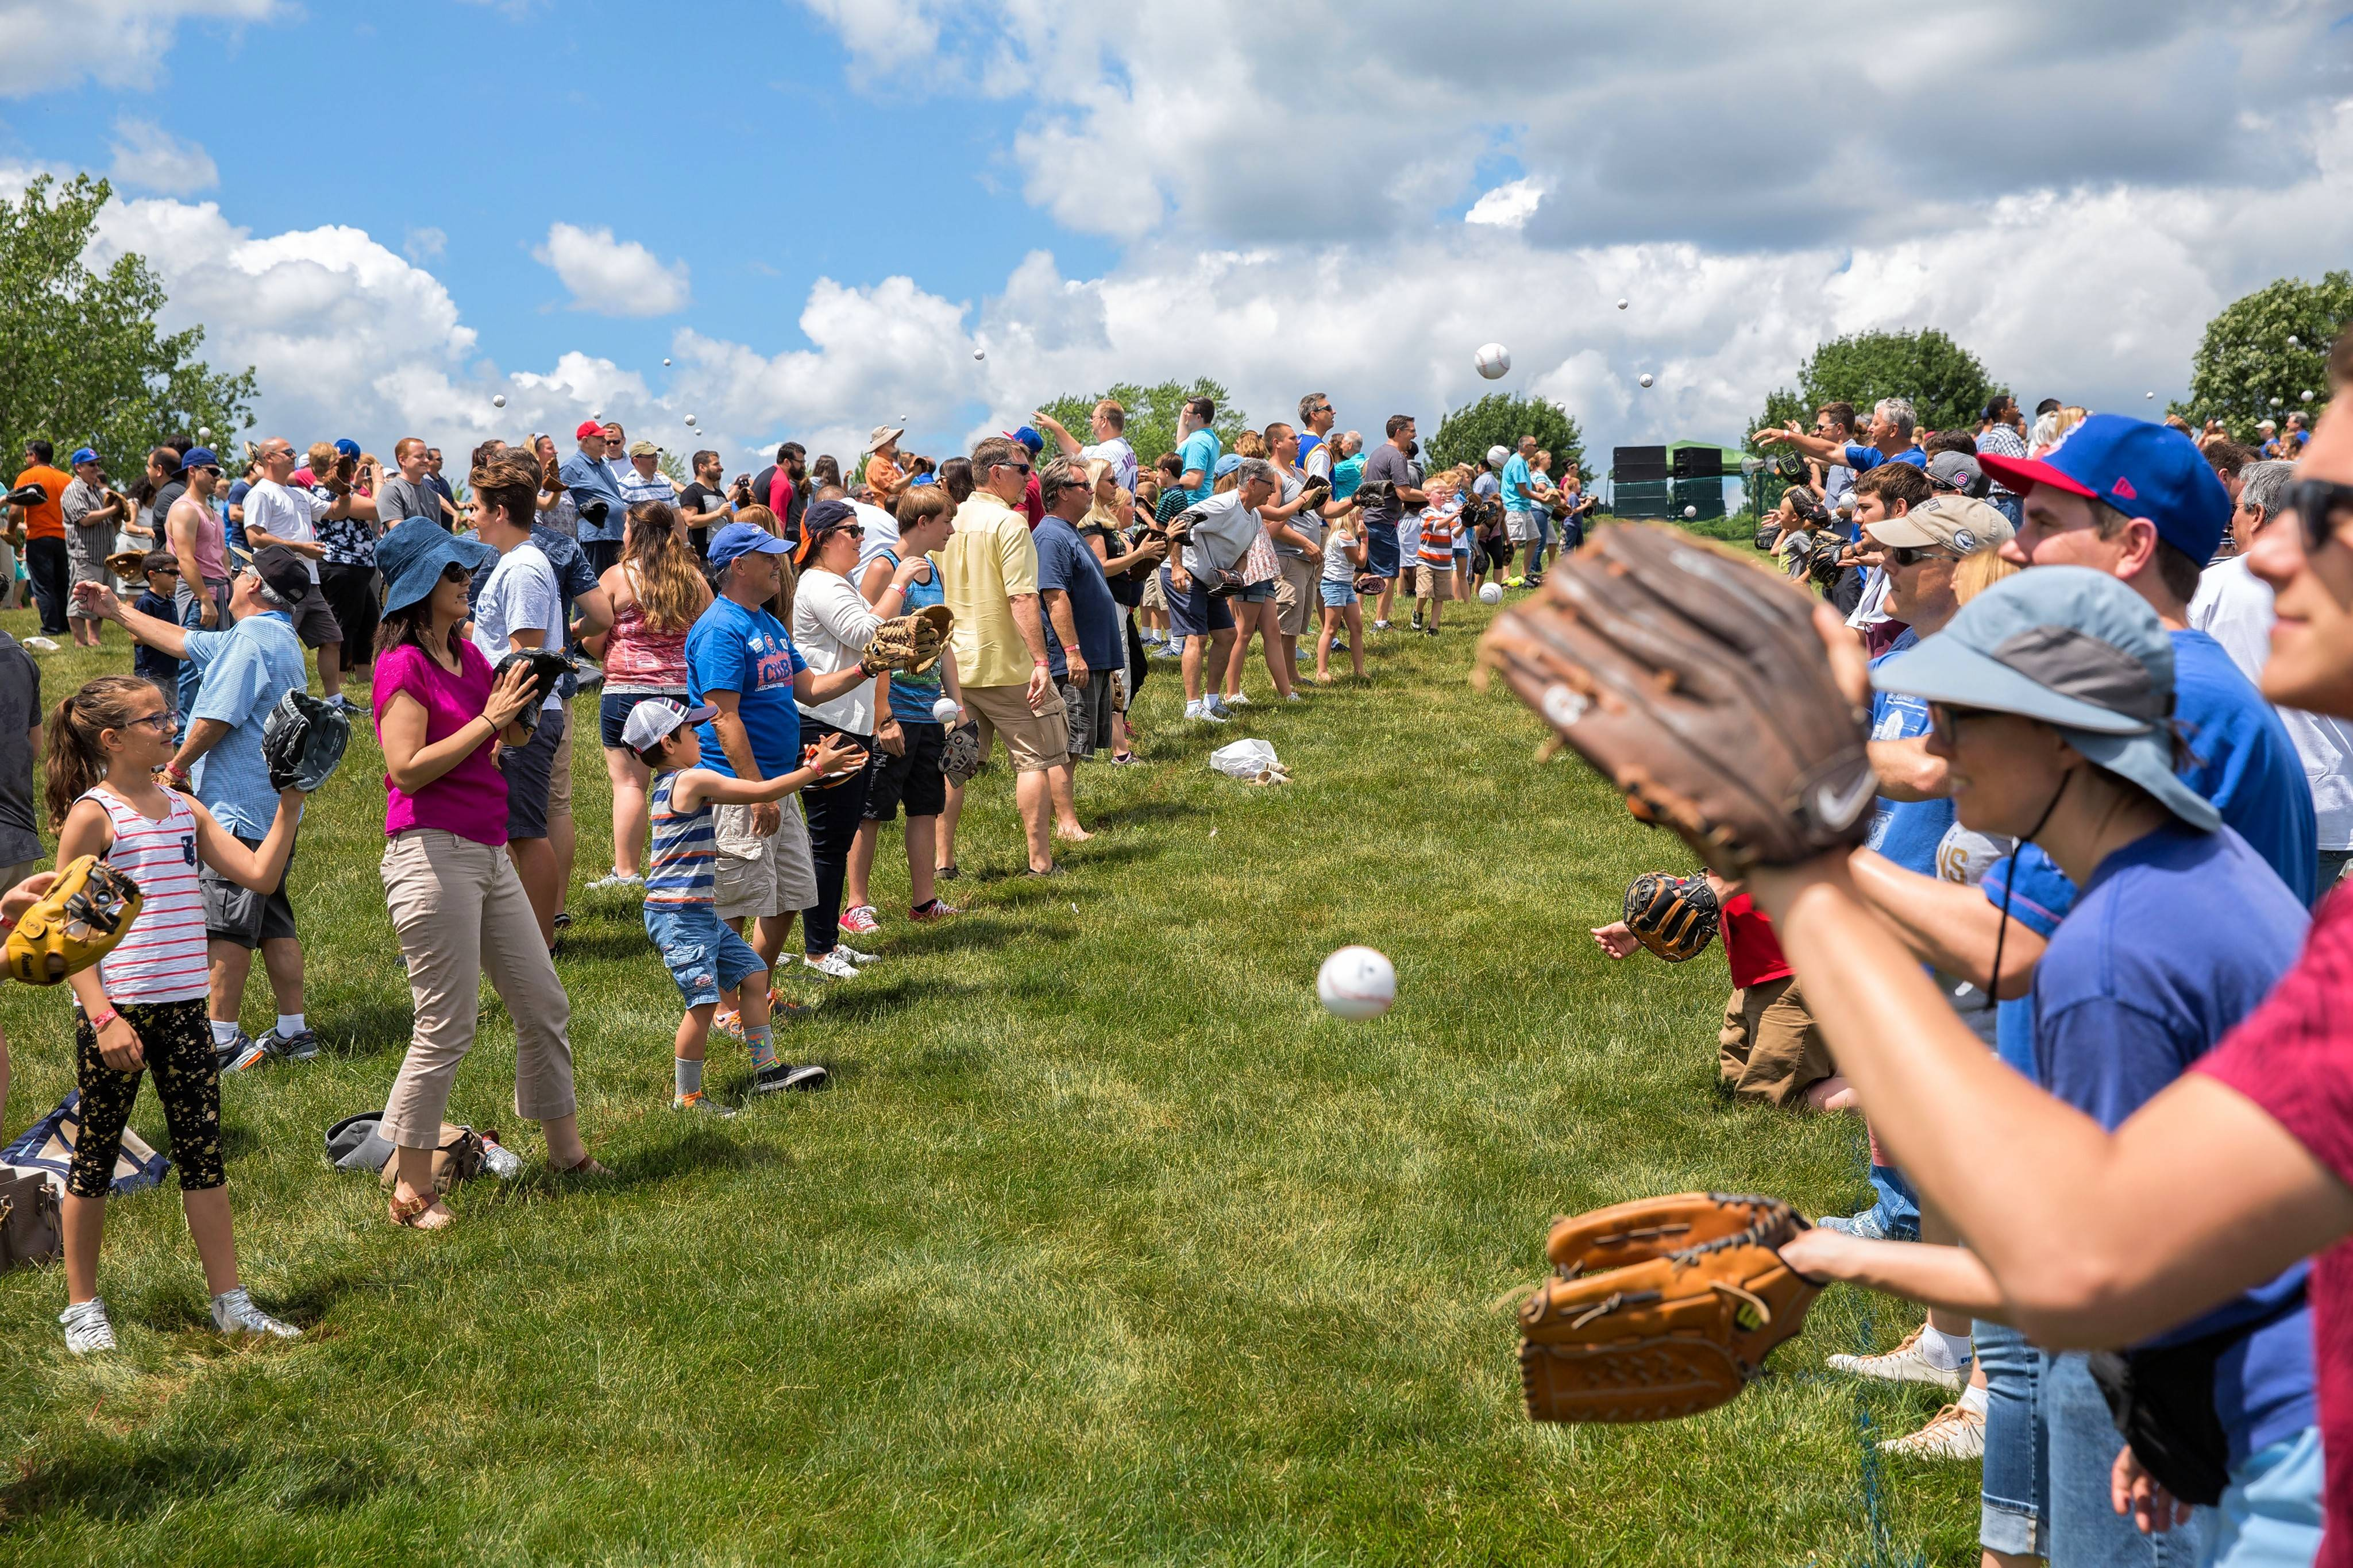 Courtesy Rich ChapmanHundreds of people played catch Sunday at Willow Creek Community Church in South Barrington in an attempt to set a new world record.